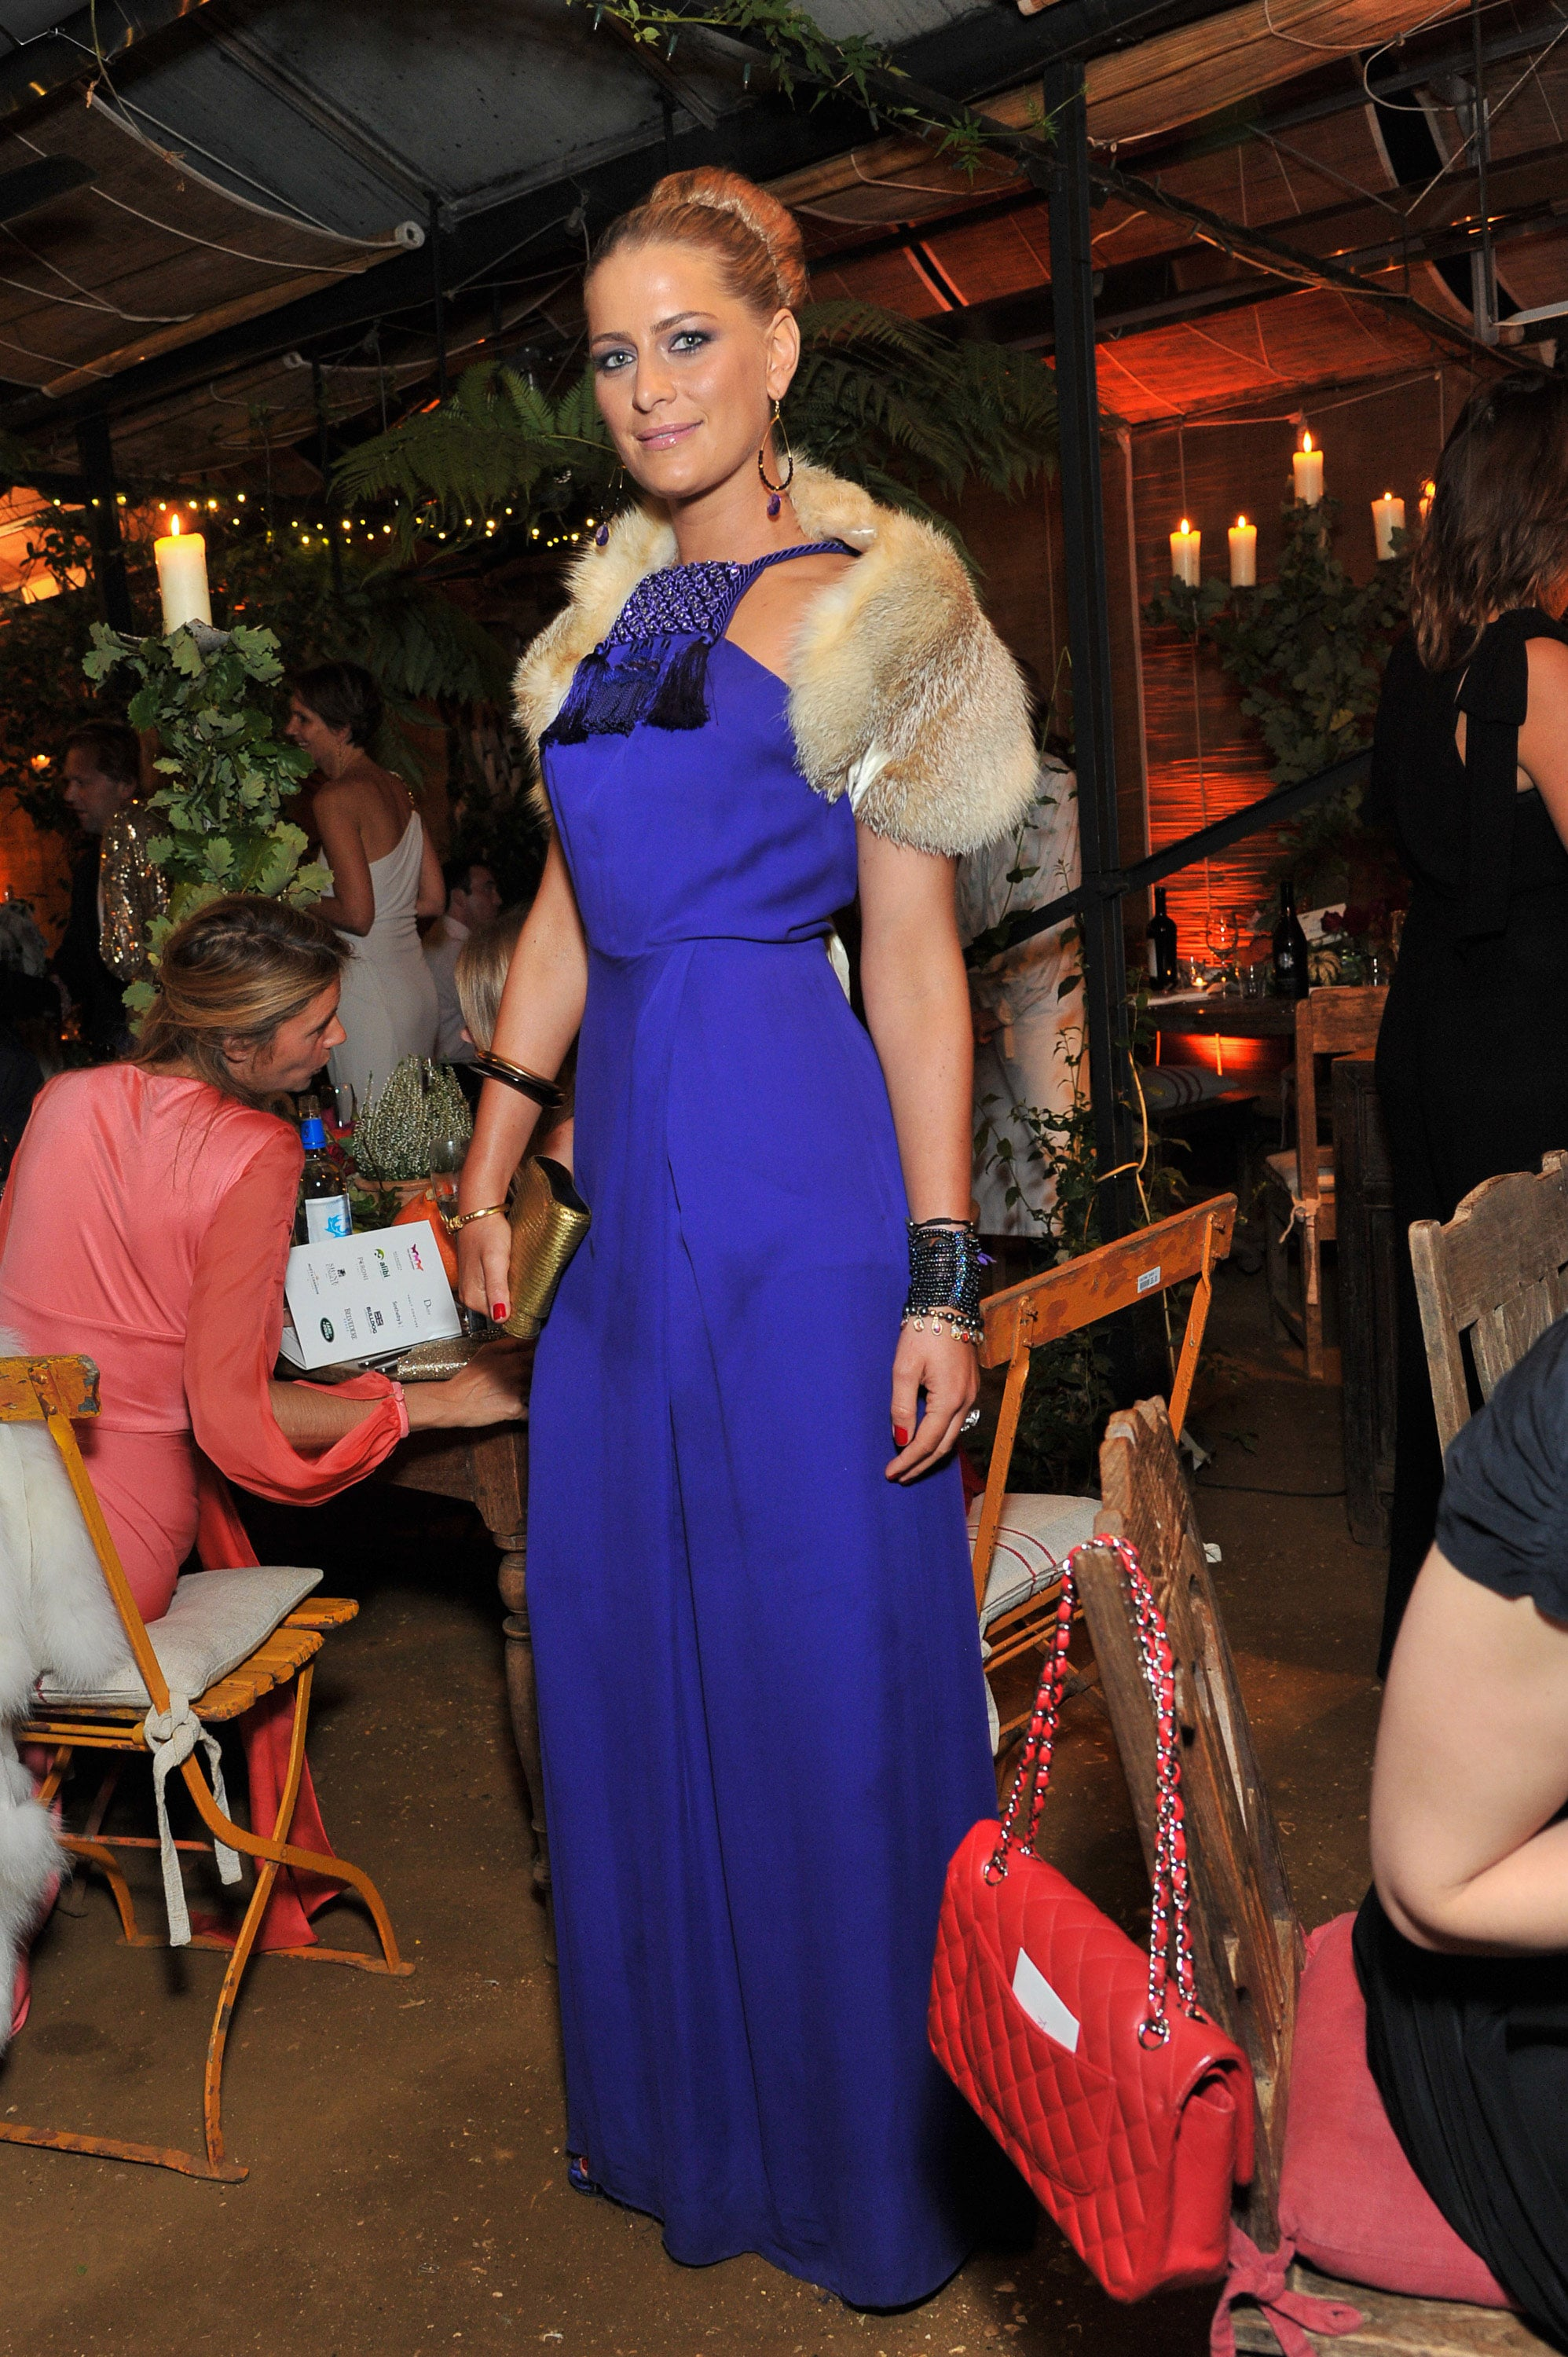 Princess Tatiana at an All Saints charity event in England.